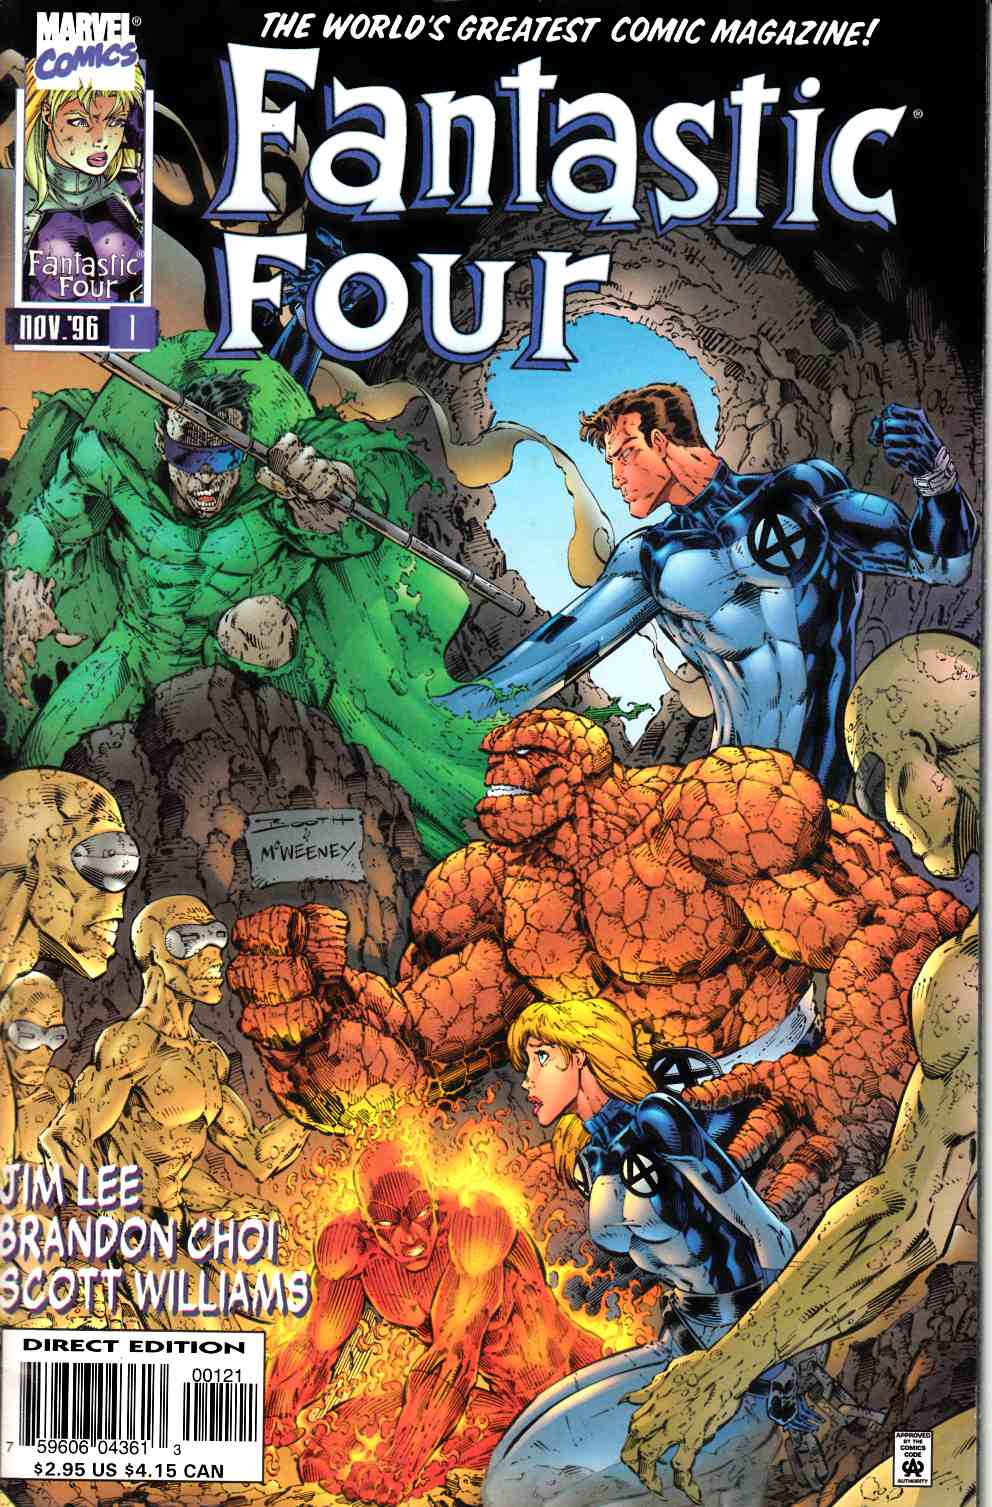 Fantastic Four #1 Cover B Very Fine (8.0) [Marvel Comic] THUMBNAIL